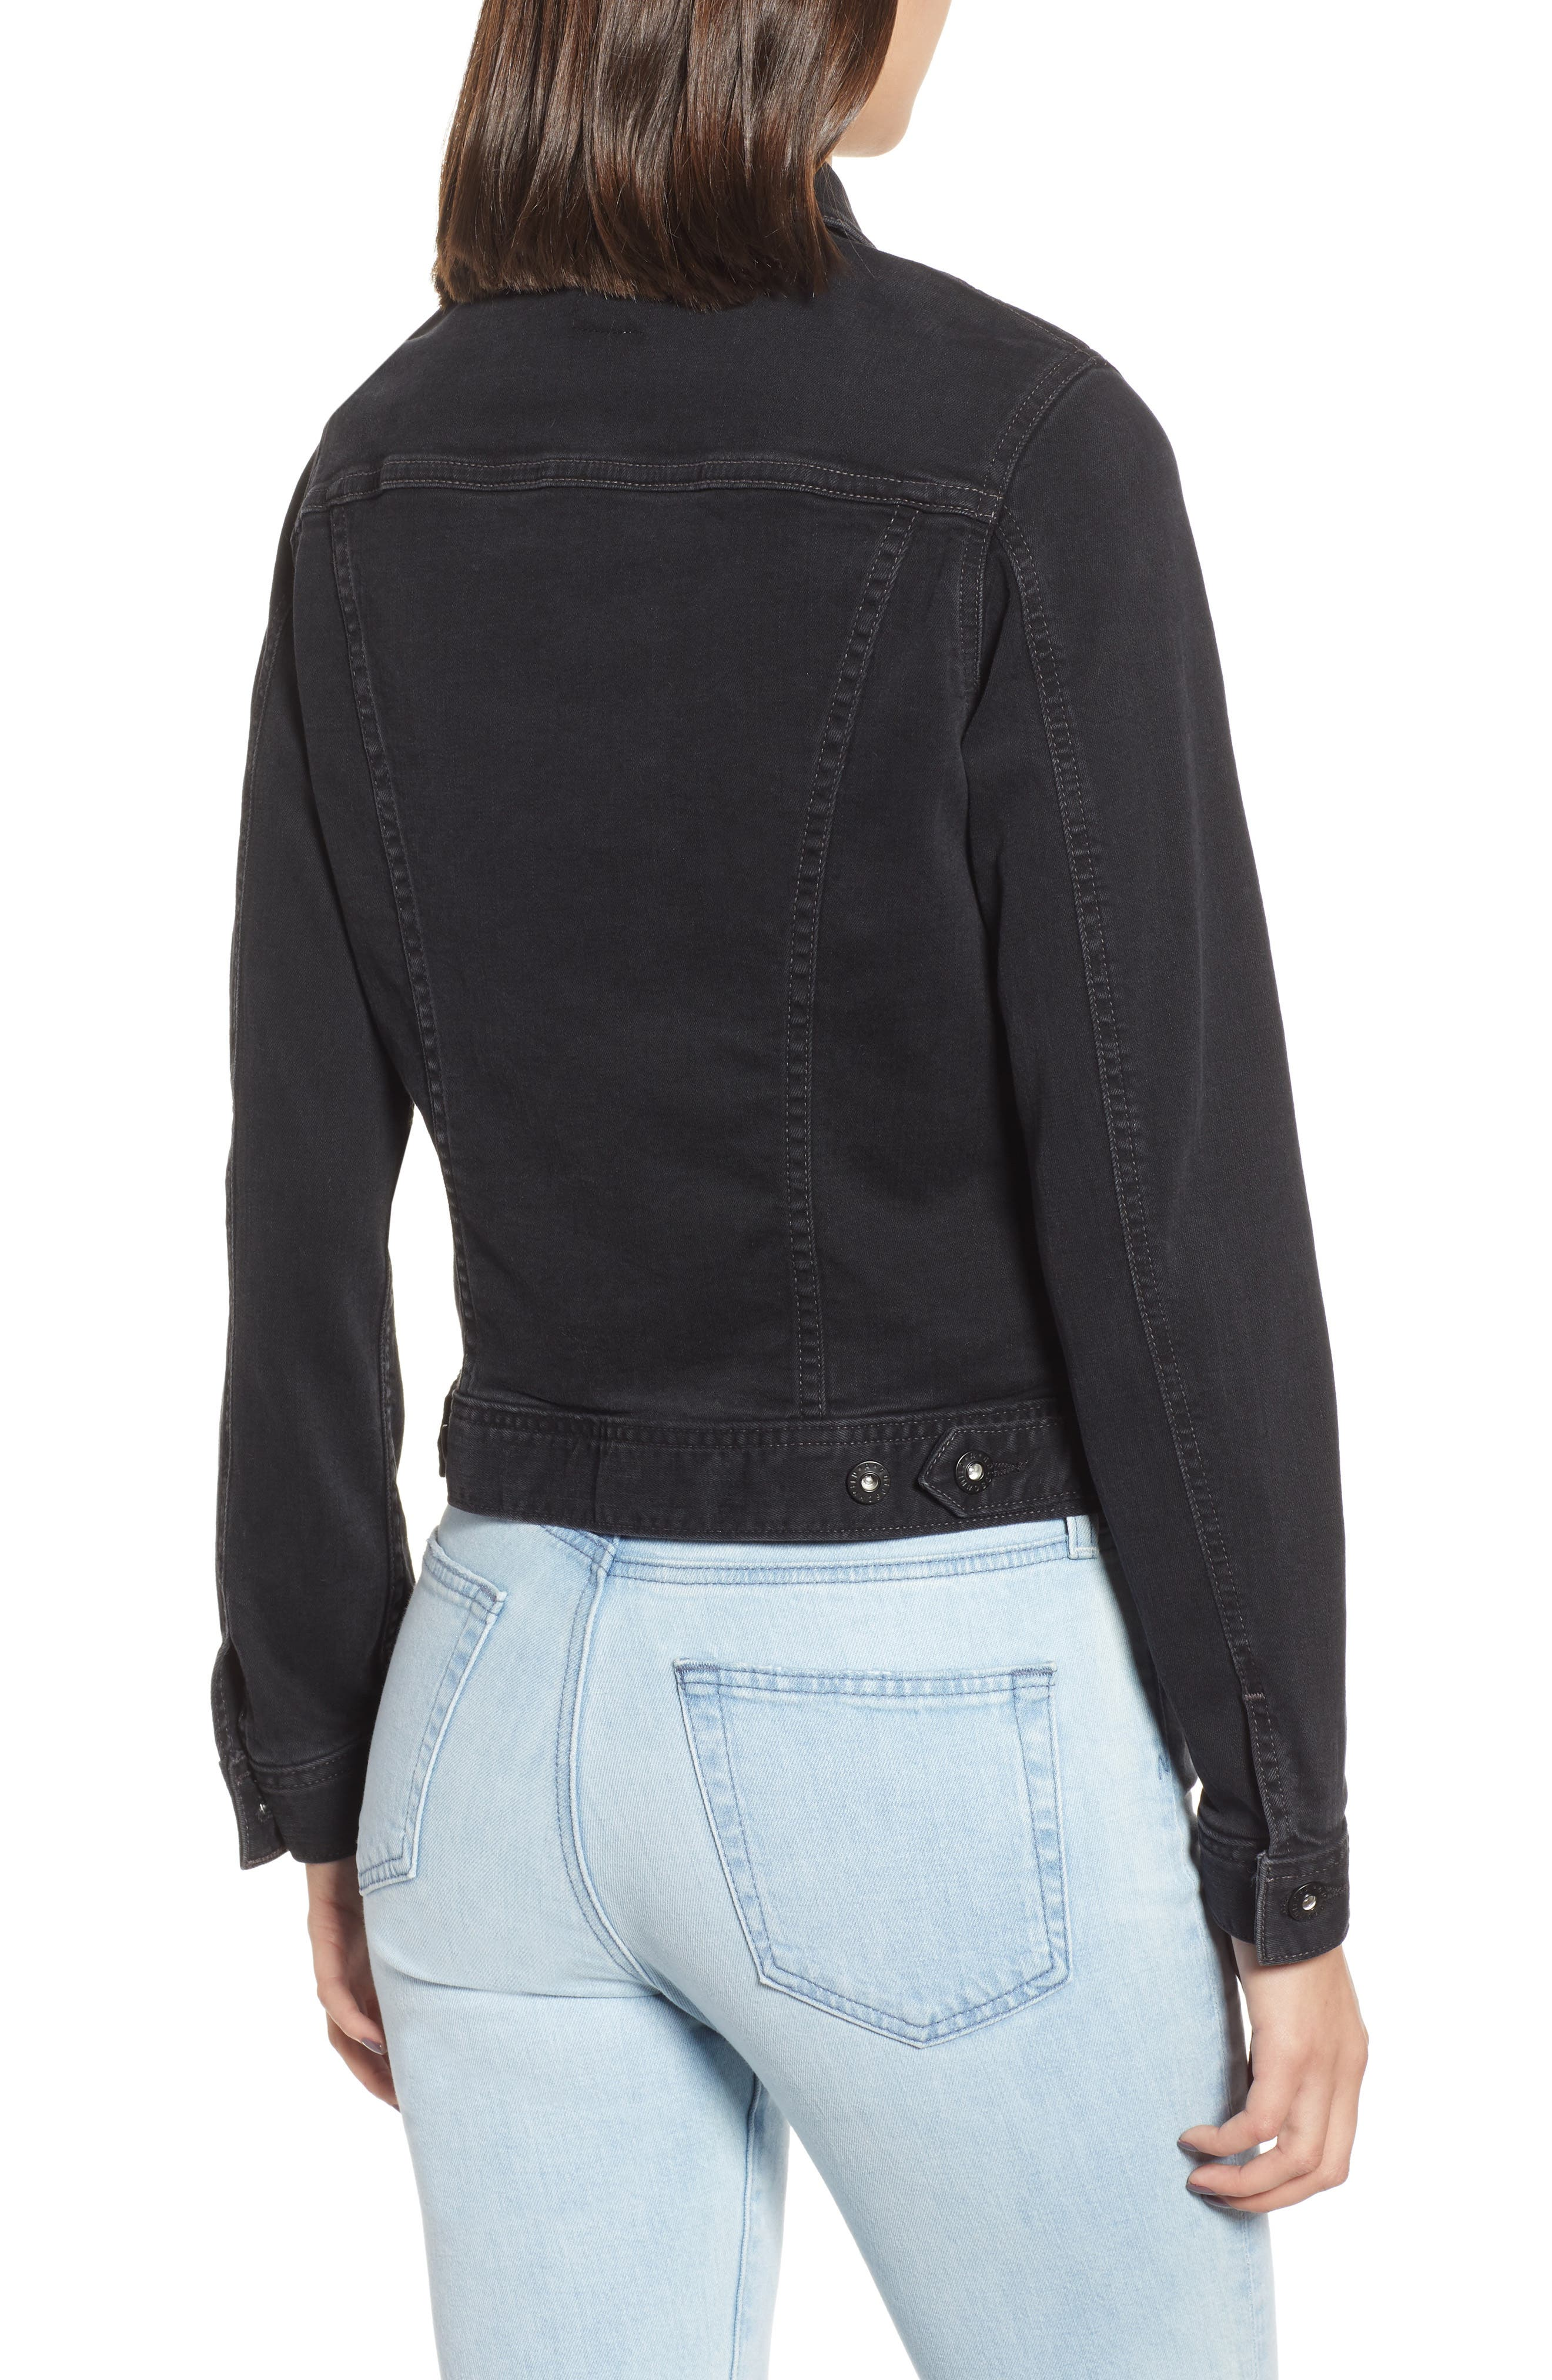 'Robyn' Crop Denim Jacket,                             Alternate thumbnail 2, color,                             DUSTED UMBRIA